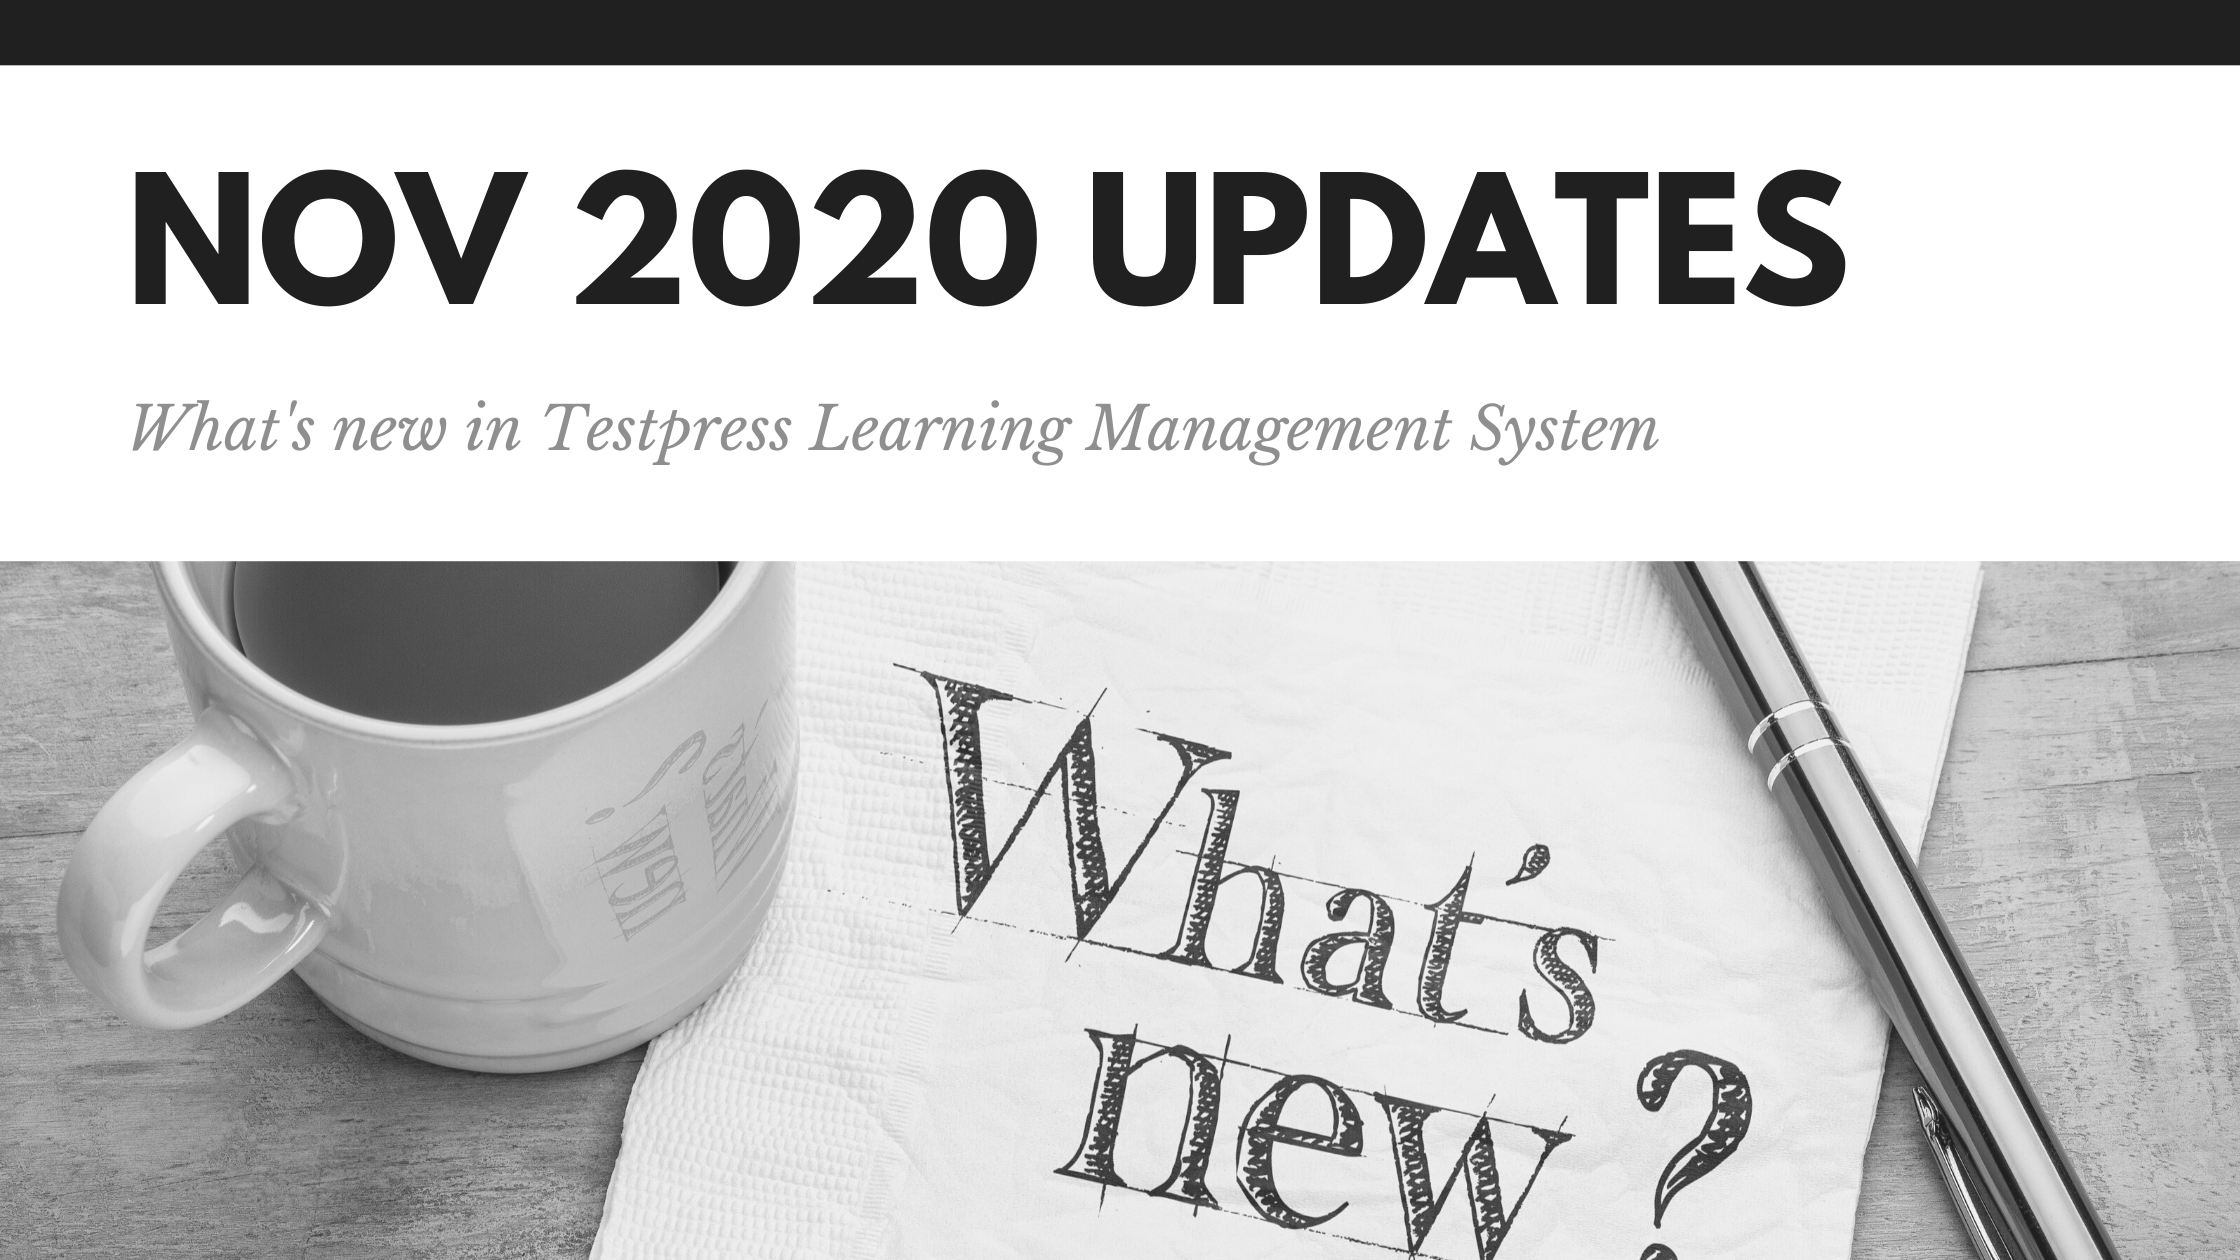 What's new in Testpress Learning Management System - Nov 2020